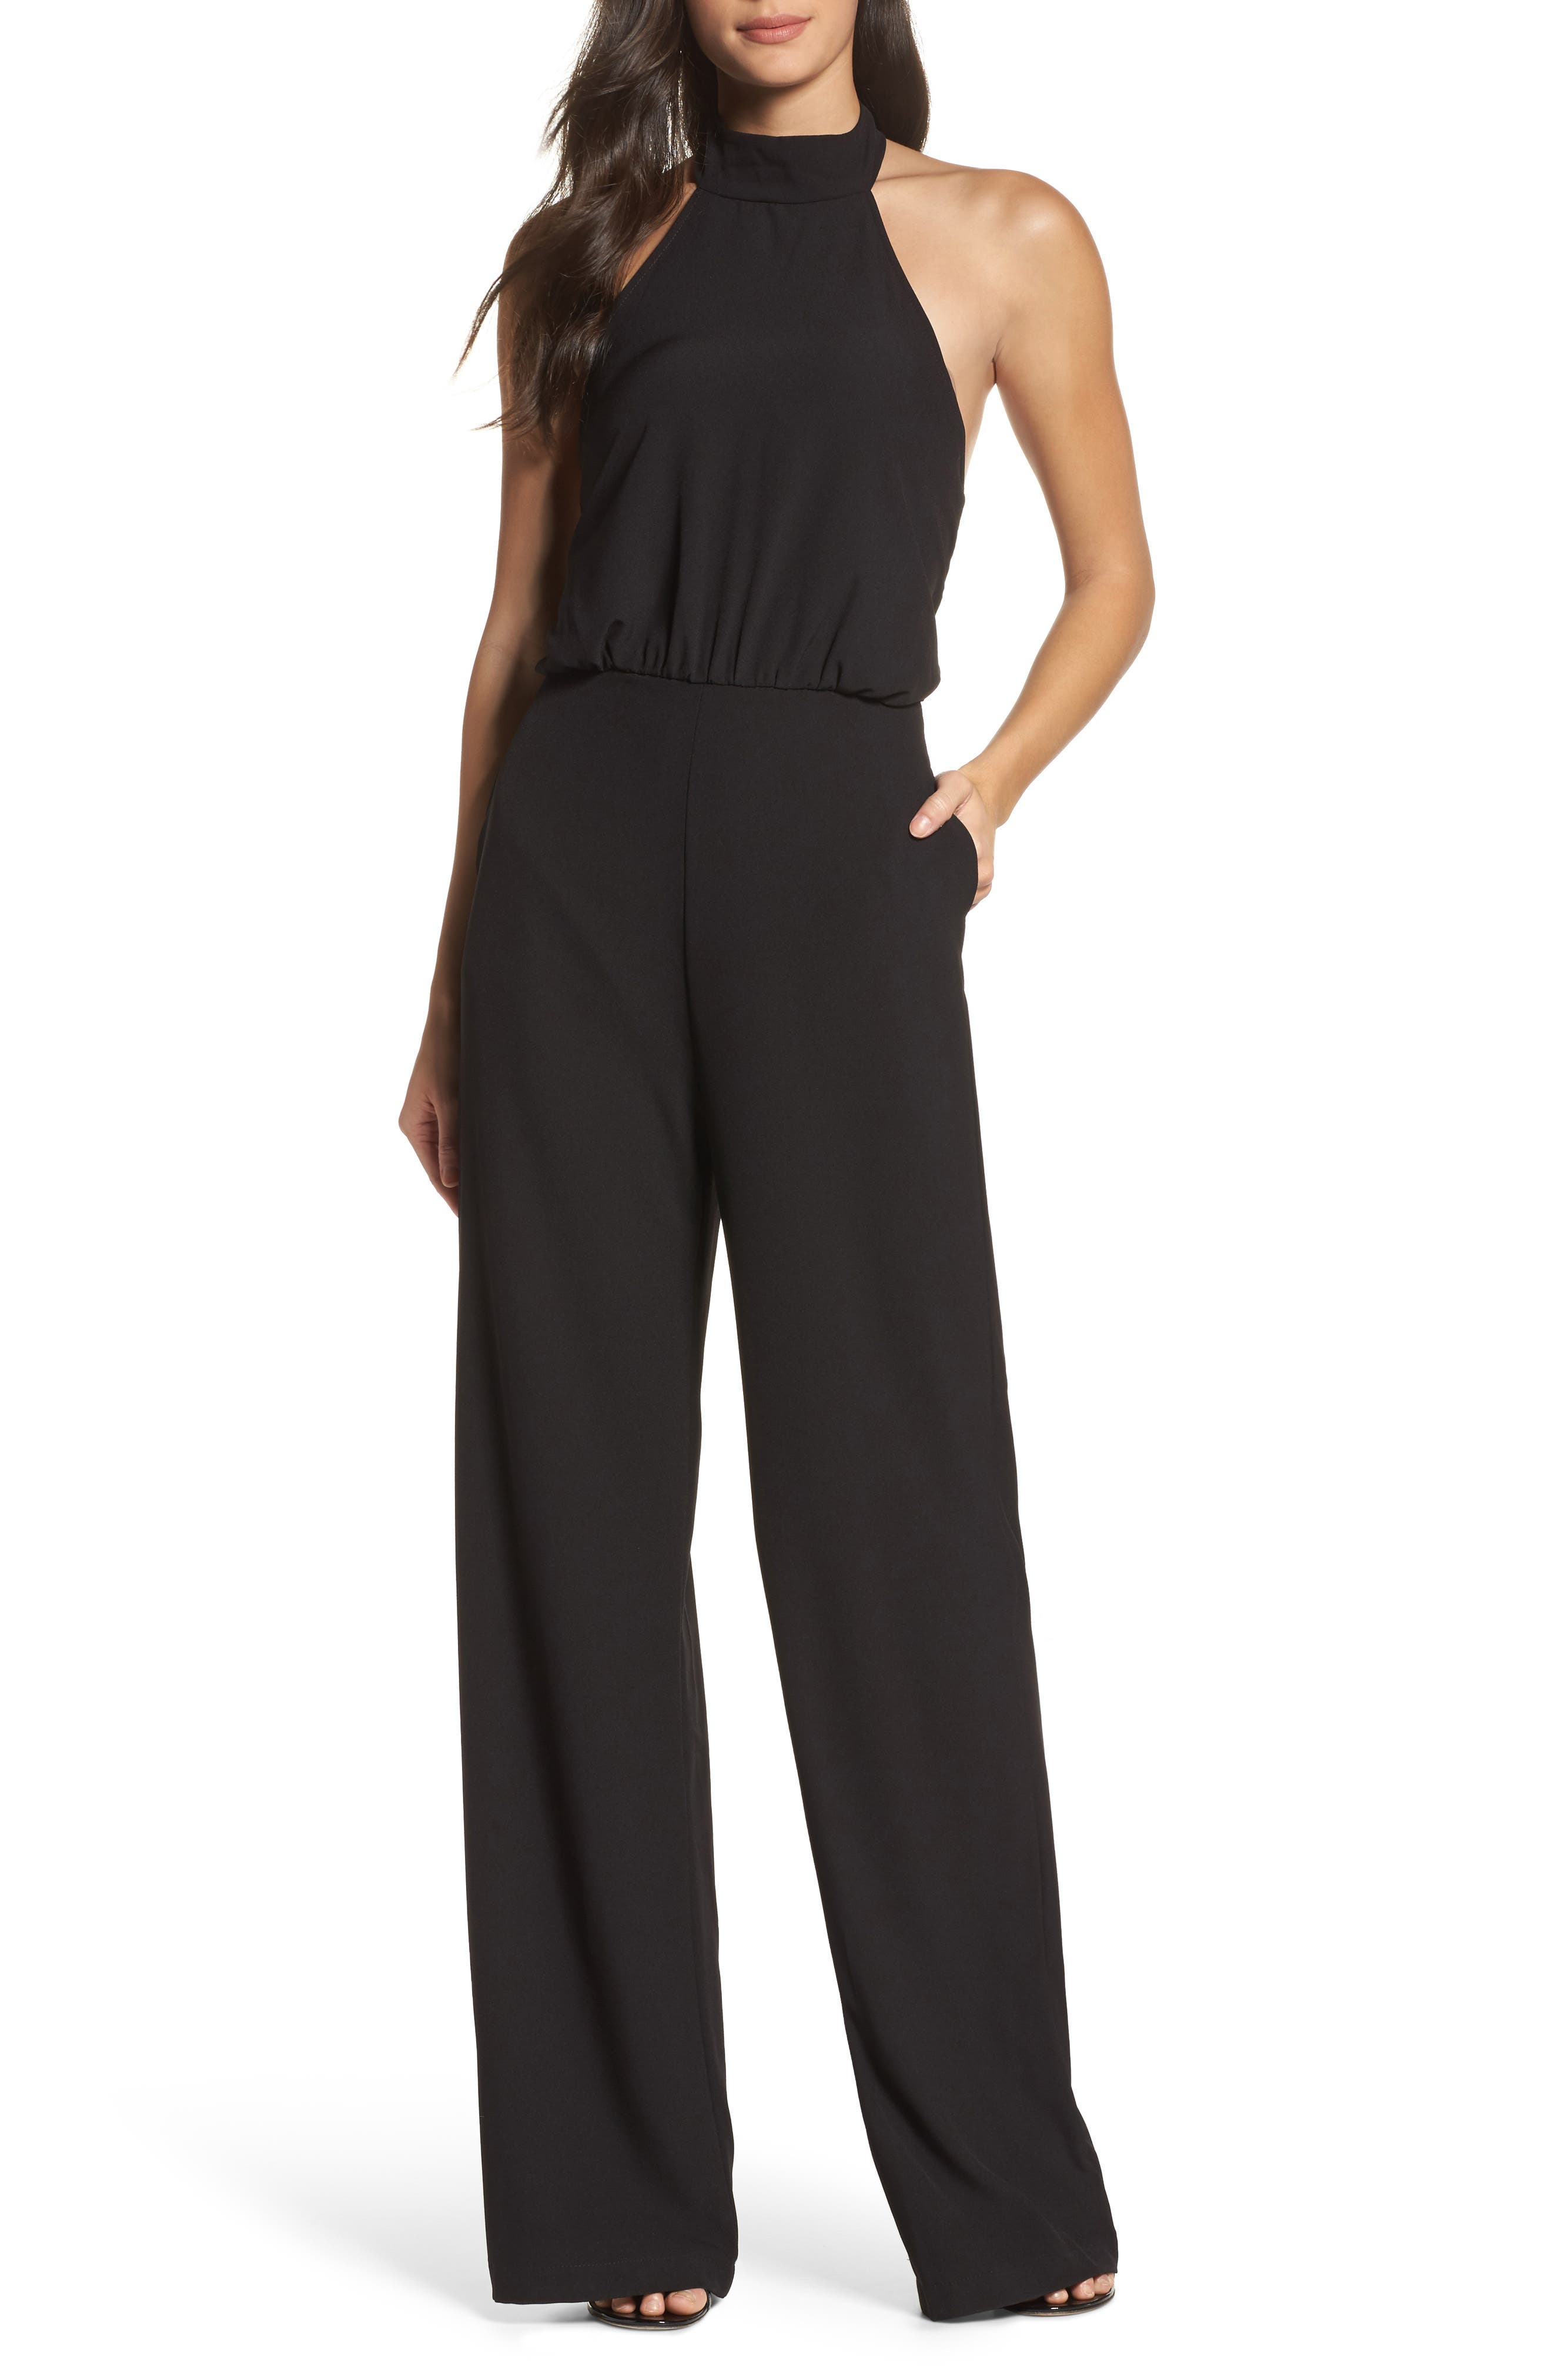 Lulus Moment for Life Halter Jumpsuit